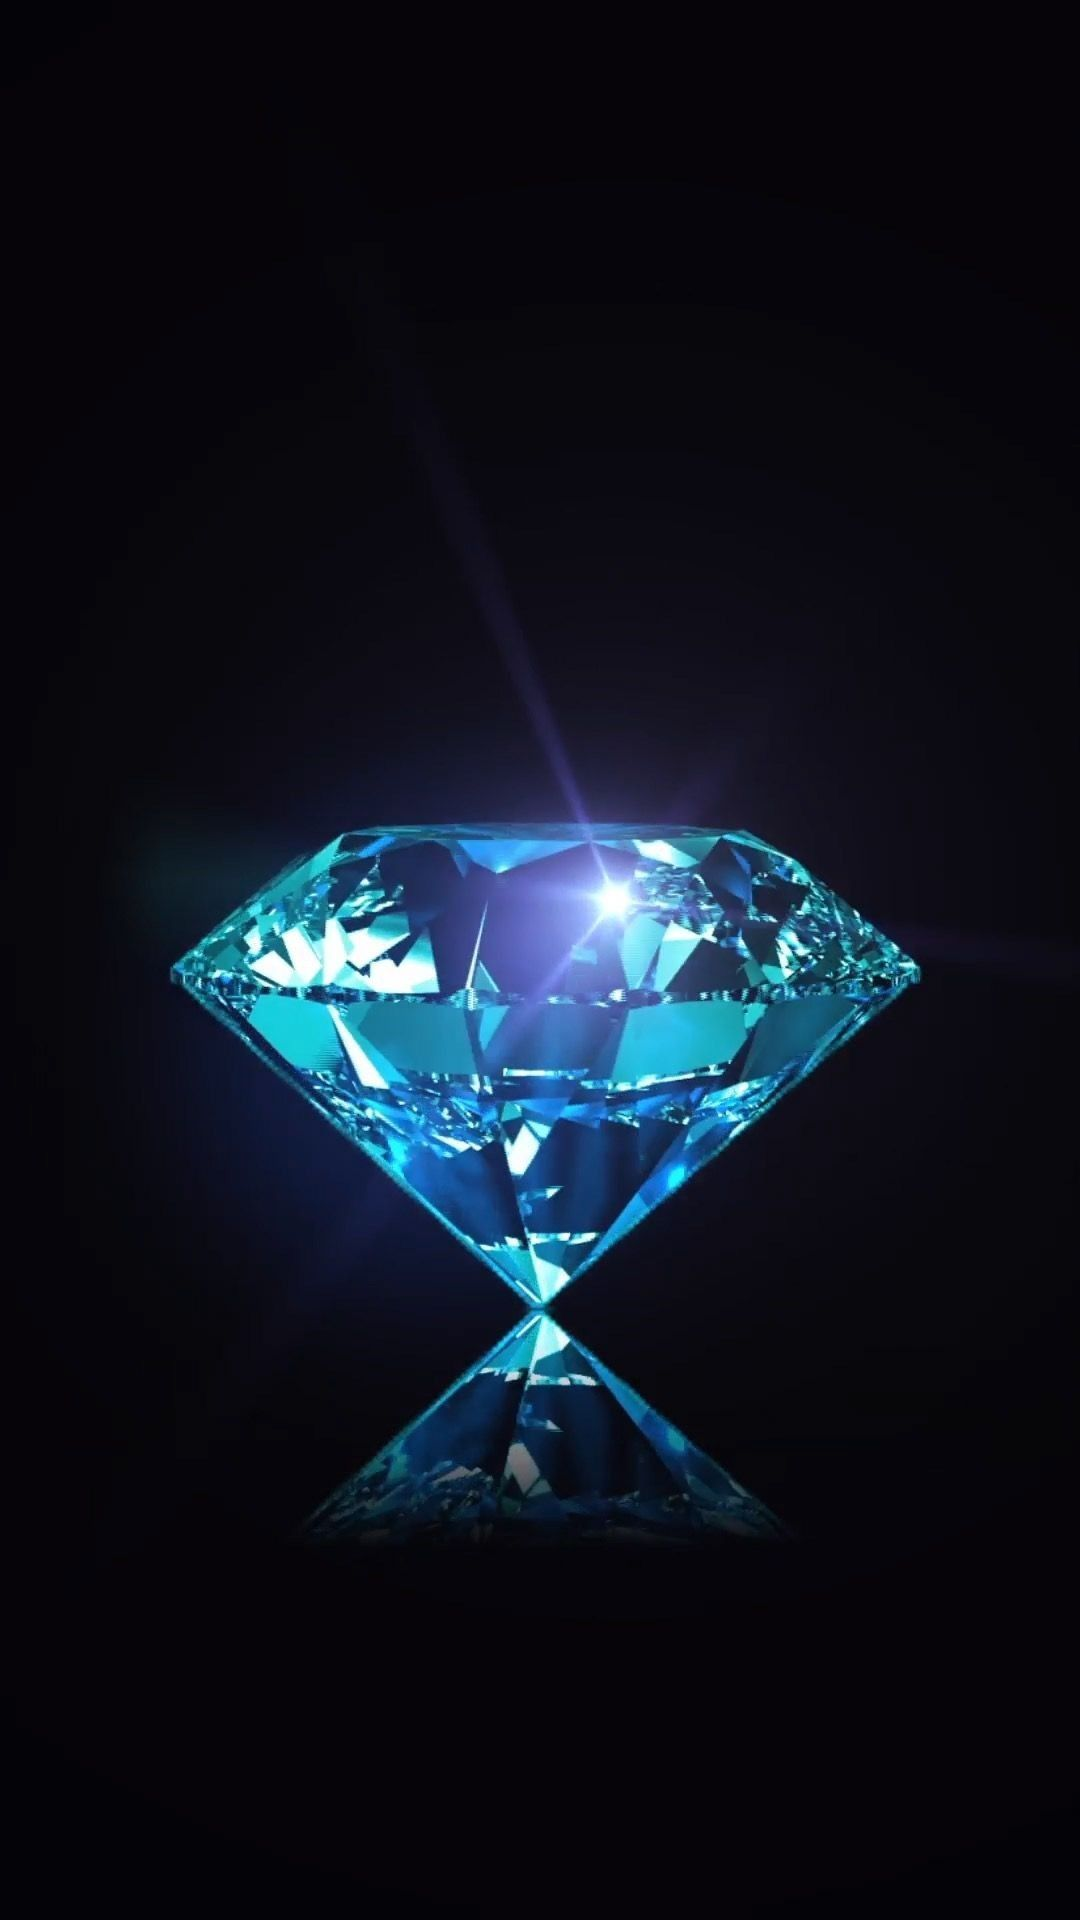 The Clear Colorless Diamond Is Not Influenced By Color Energy Rather It Is A Stone Of Light An I In 2020 Diamond Wallpaper Iphone Diamond Wallpaper Blue Wallpapers